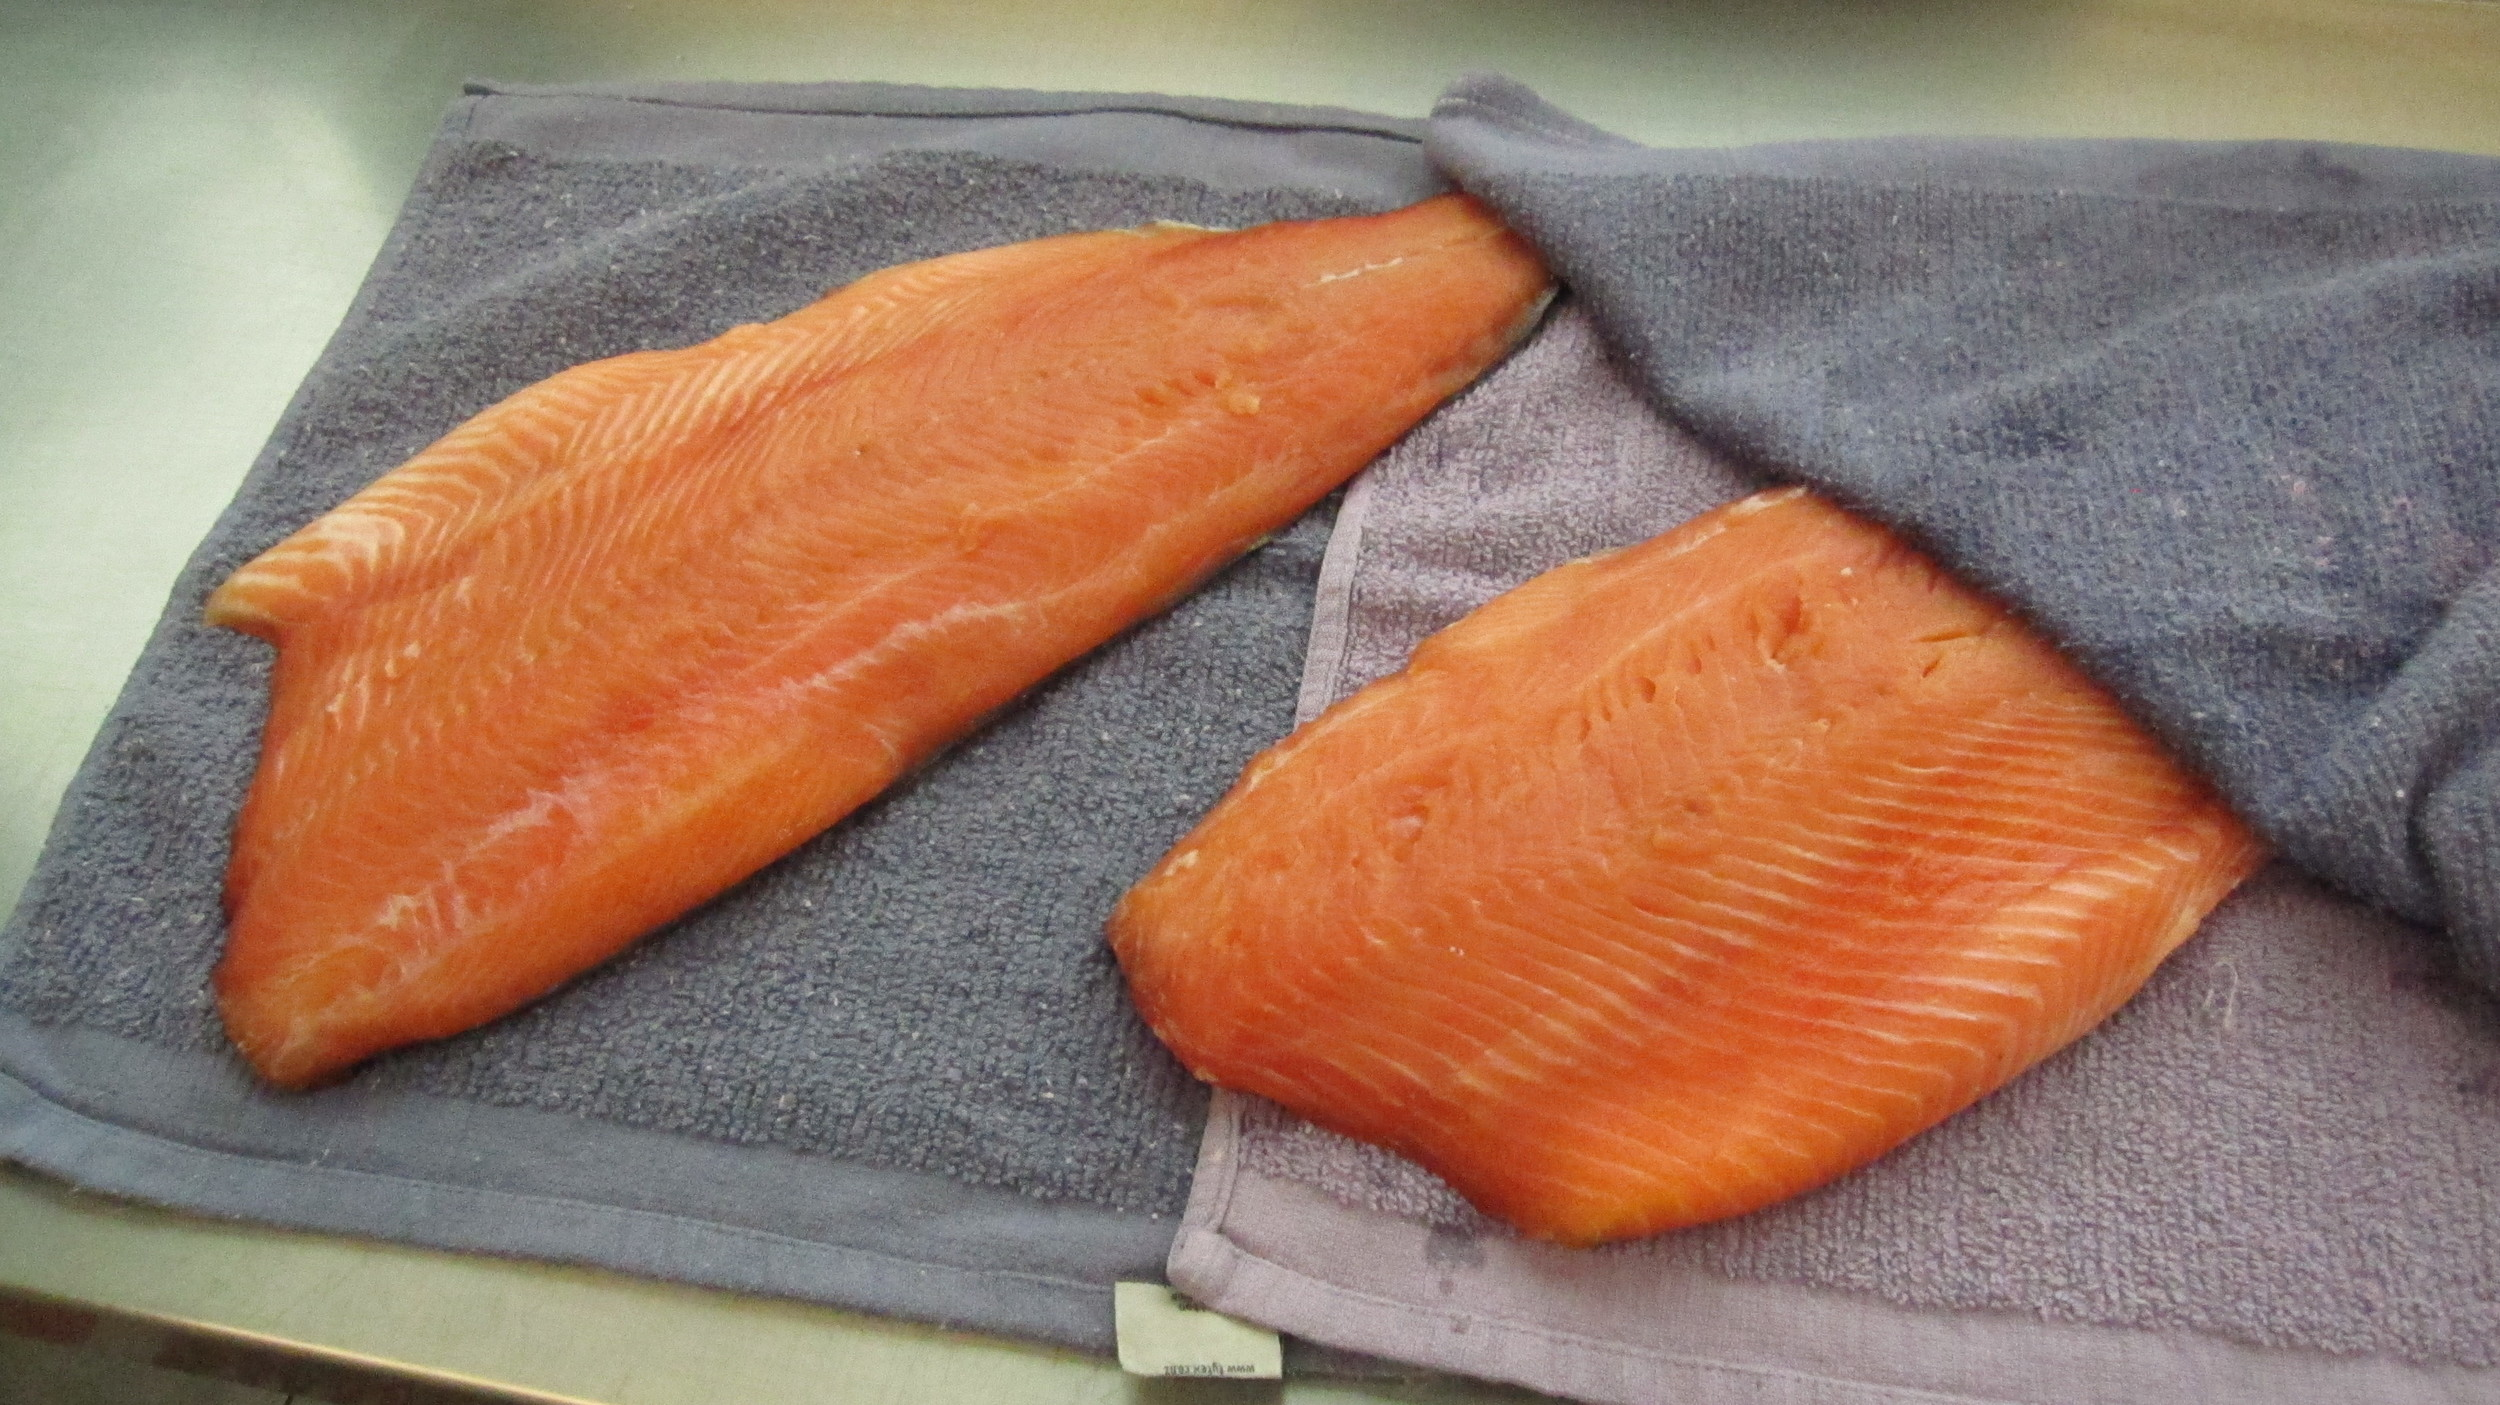 The fillets are dried thoroughly after rinsing